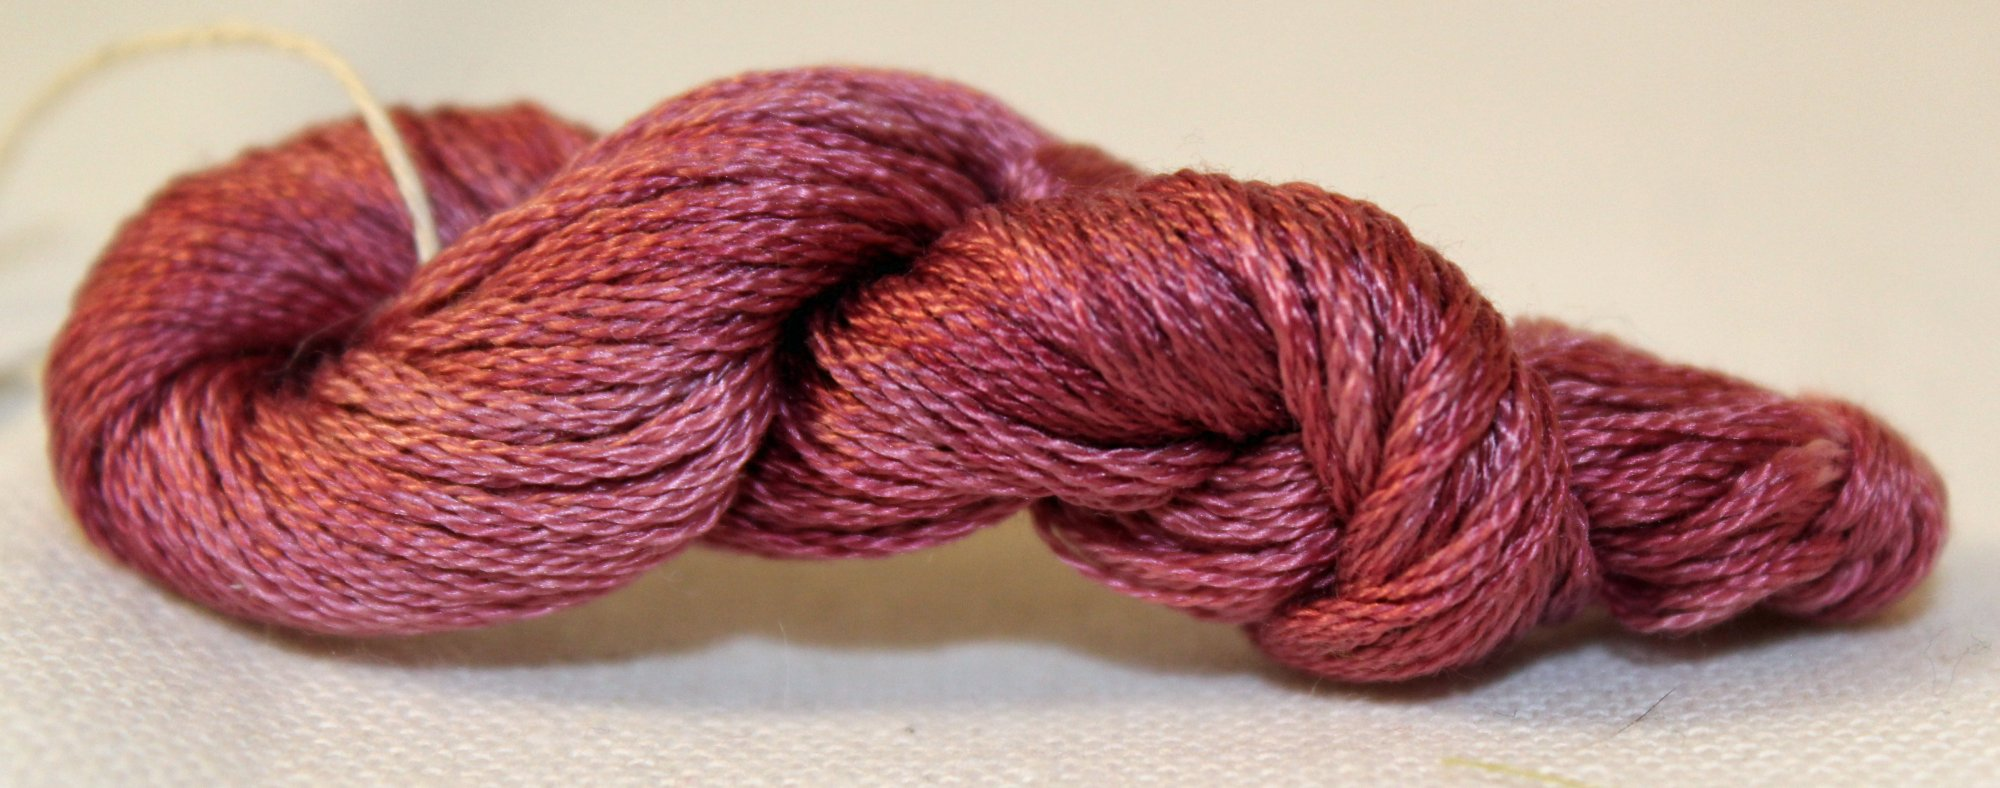 Merlot- Hand-dyed Embroidery Floss